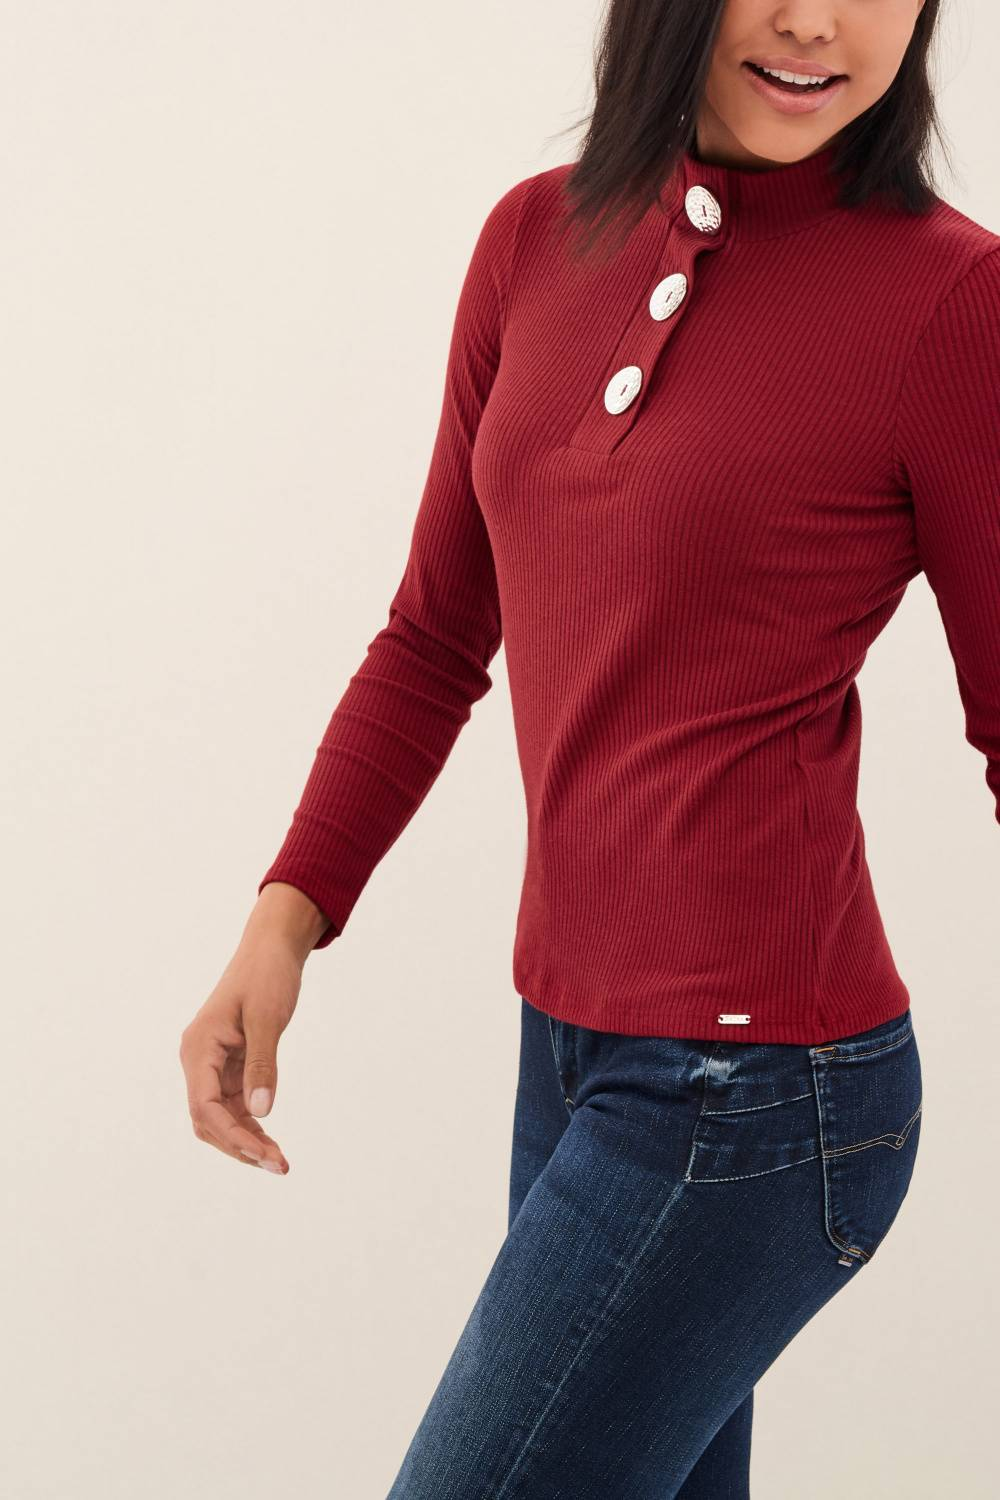 Sweatshirt with buttons on the chest - Salsa